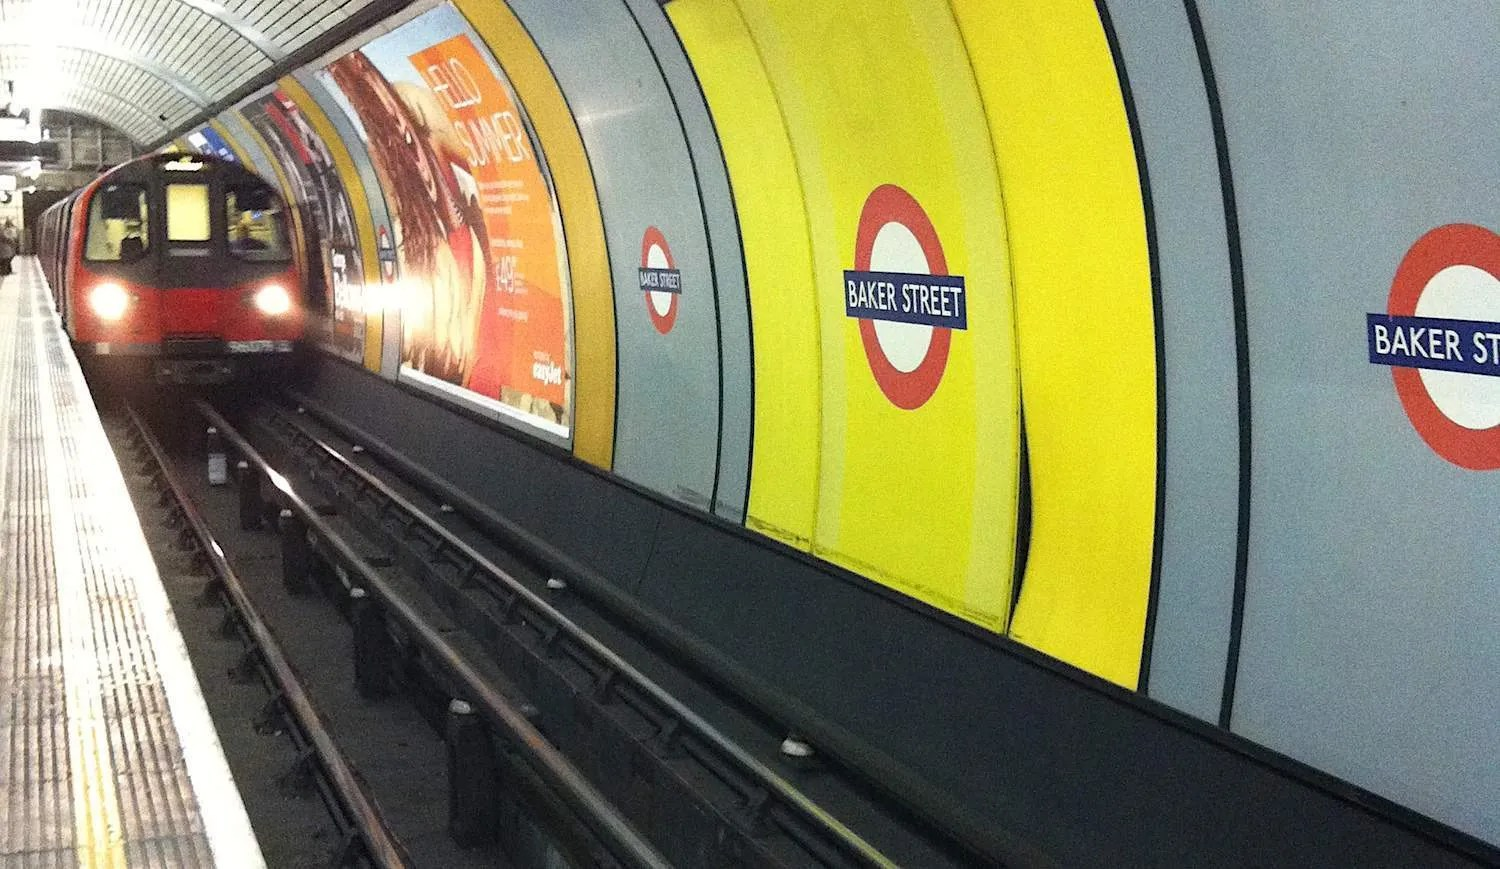 Tube entering London Underground Station